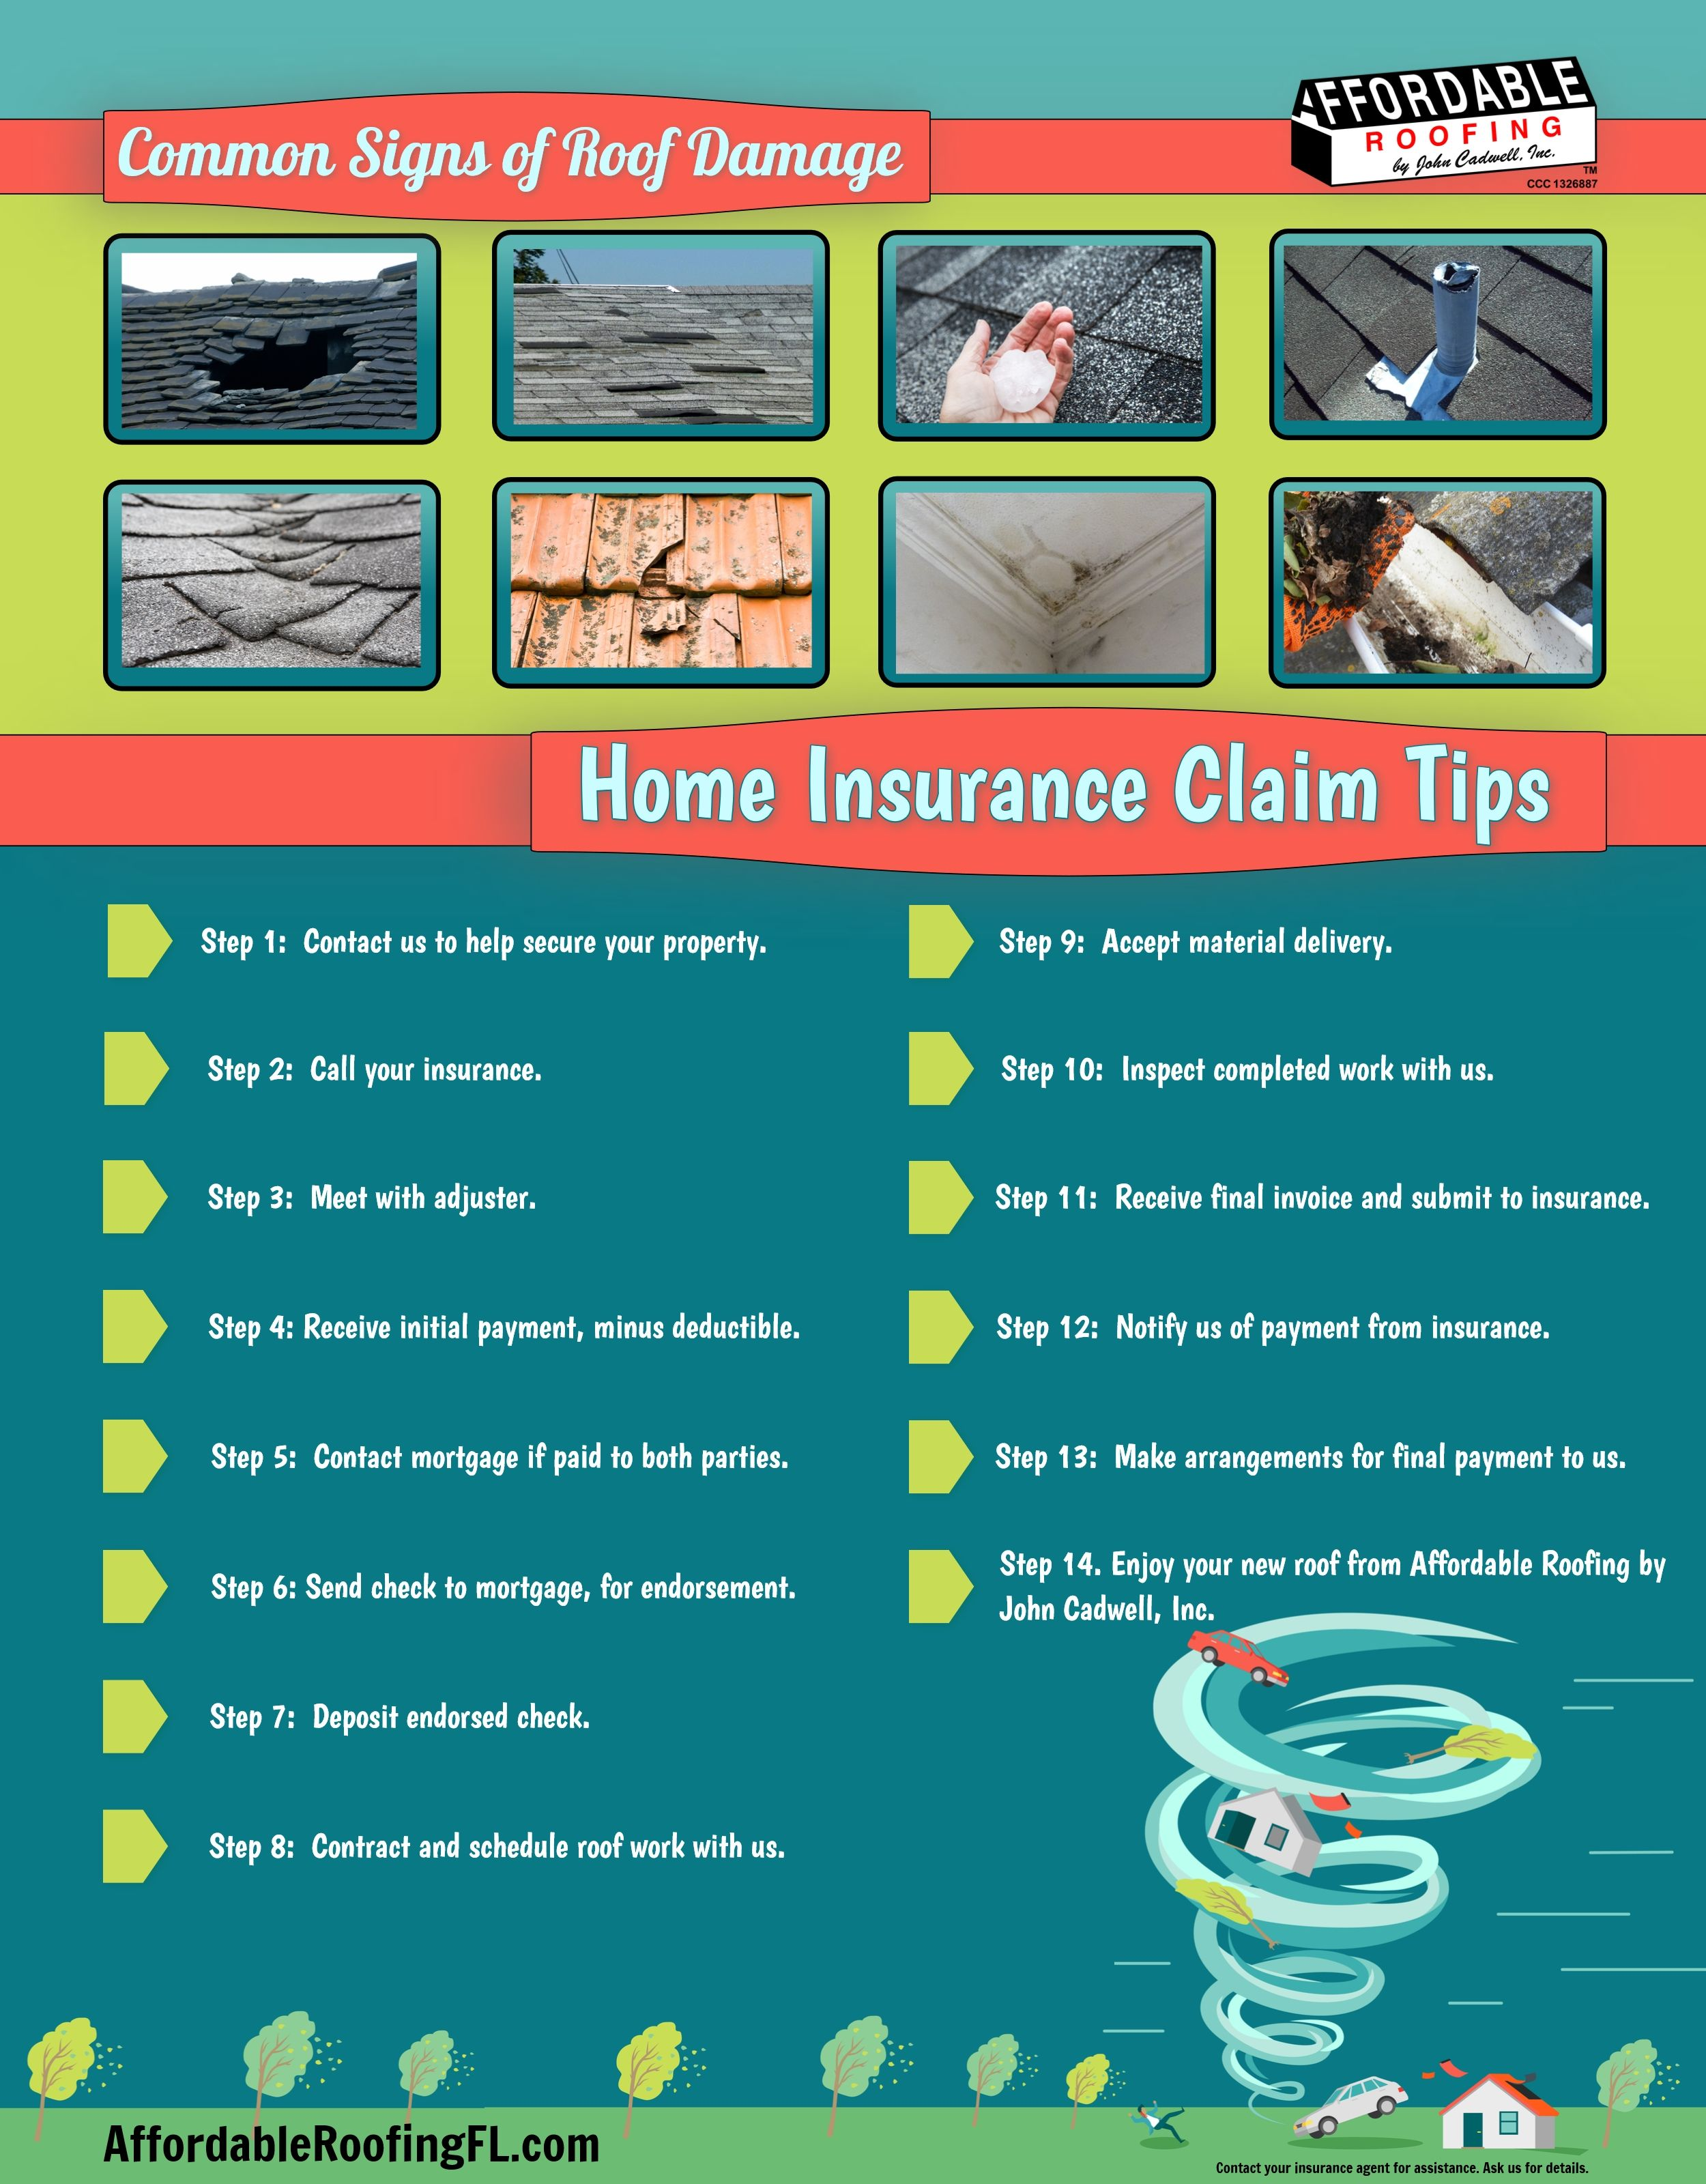 Signs Of Roof Damage And Helpful Guideline For Homeowners And Their Insurance Roof Damage Claim Affordableroofingfl Com With Images Roof Damage Roofing Roof